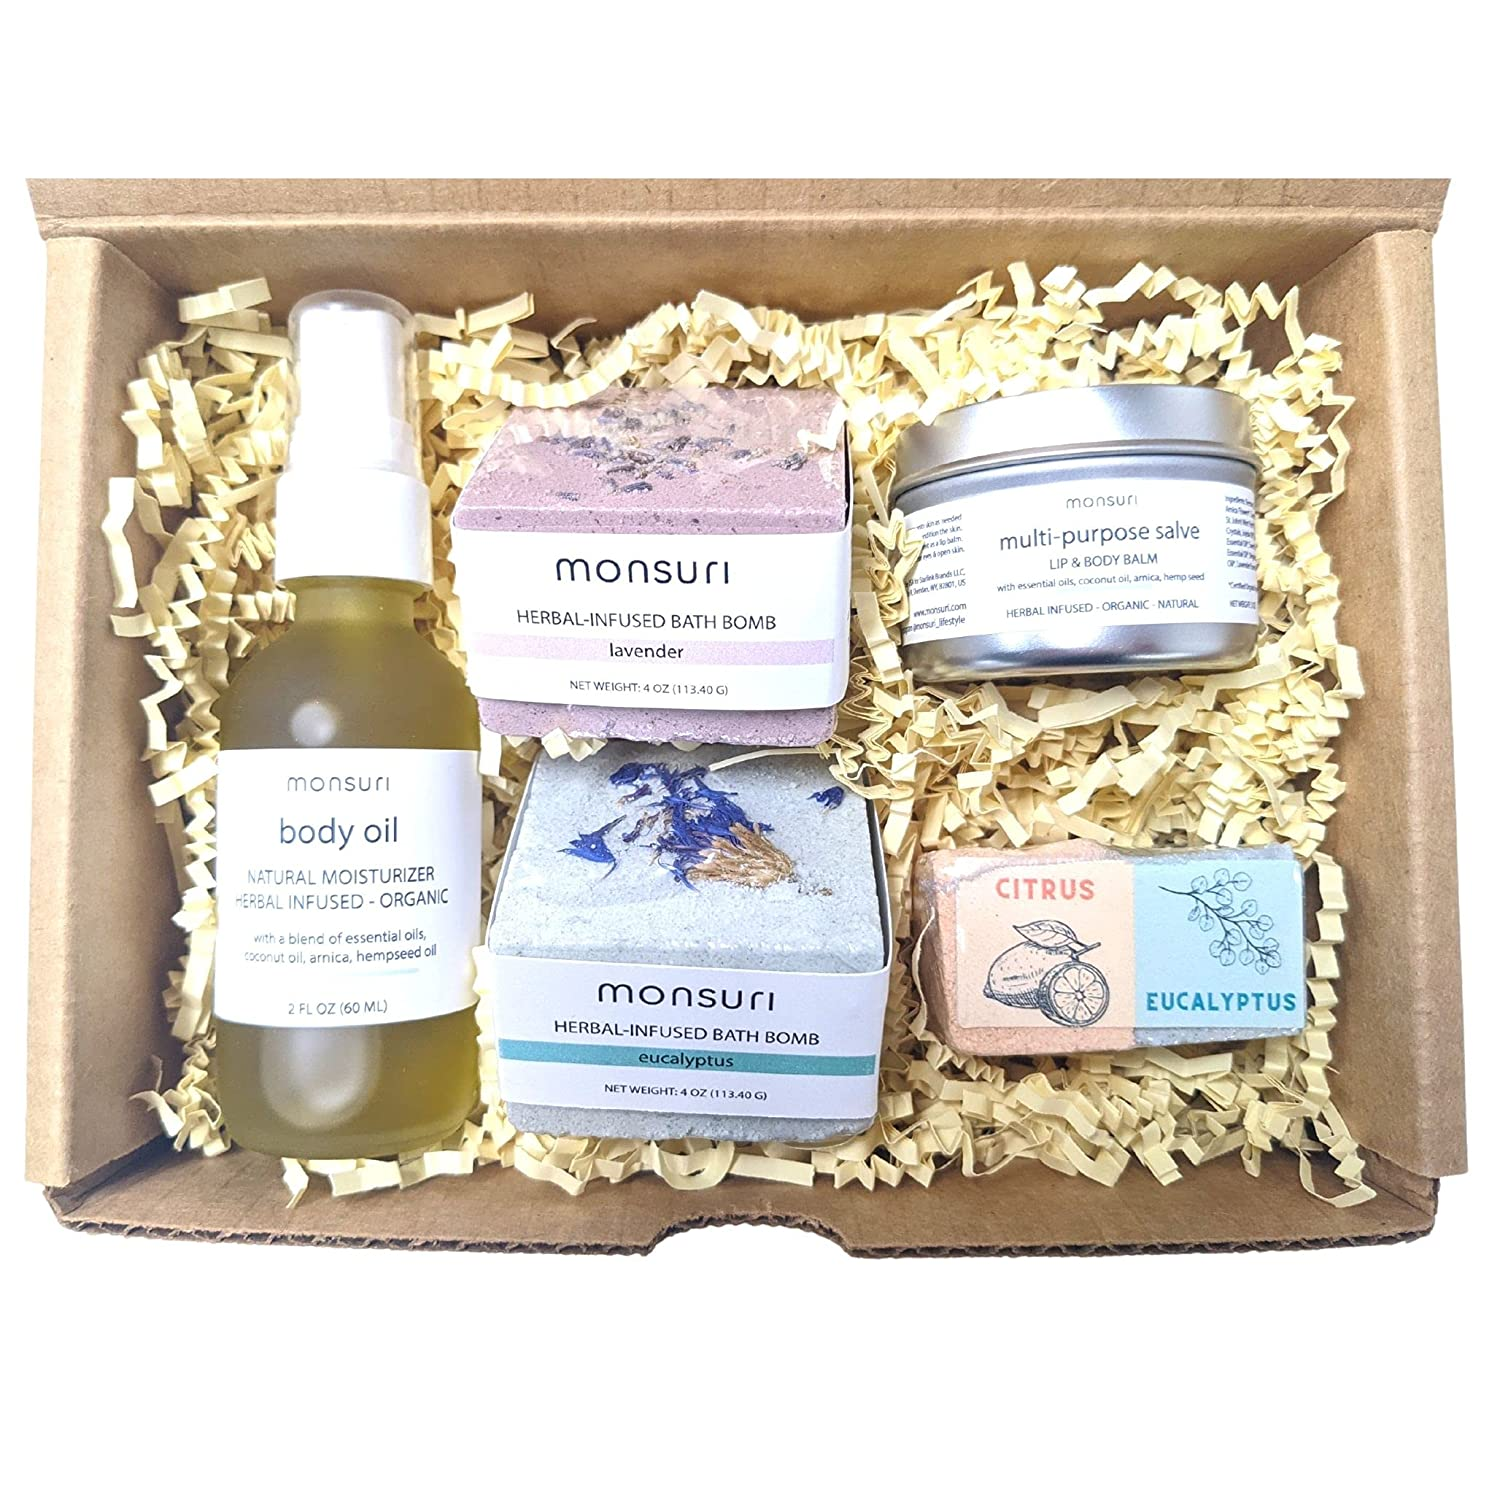 Luxury Spa Gift Baskets for Women: Self Care Package with Bath Accessories Set & At Home Spa Day Kit for Pampering and Relaxation. Get Well Soon Gift Basket, Birthday Gifts for Mom, Womens Pamper Kit